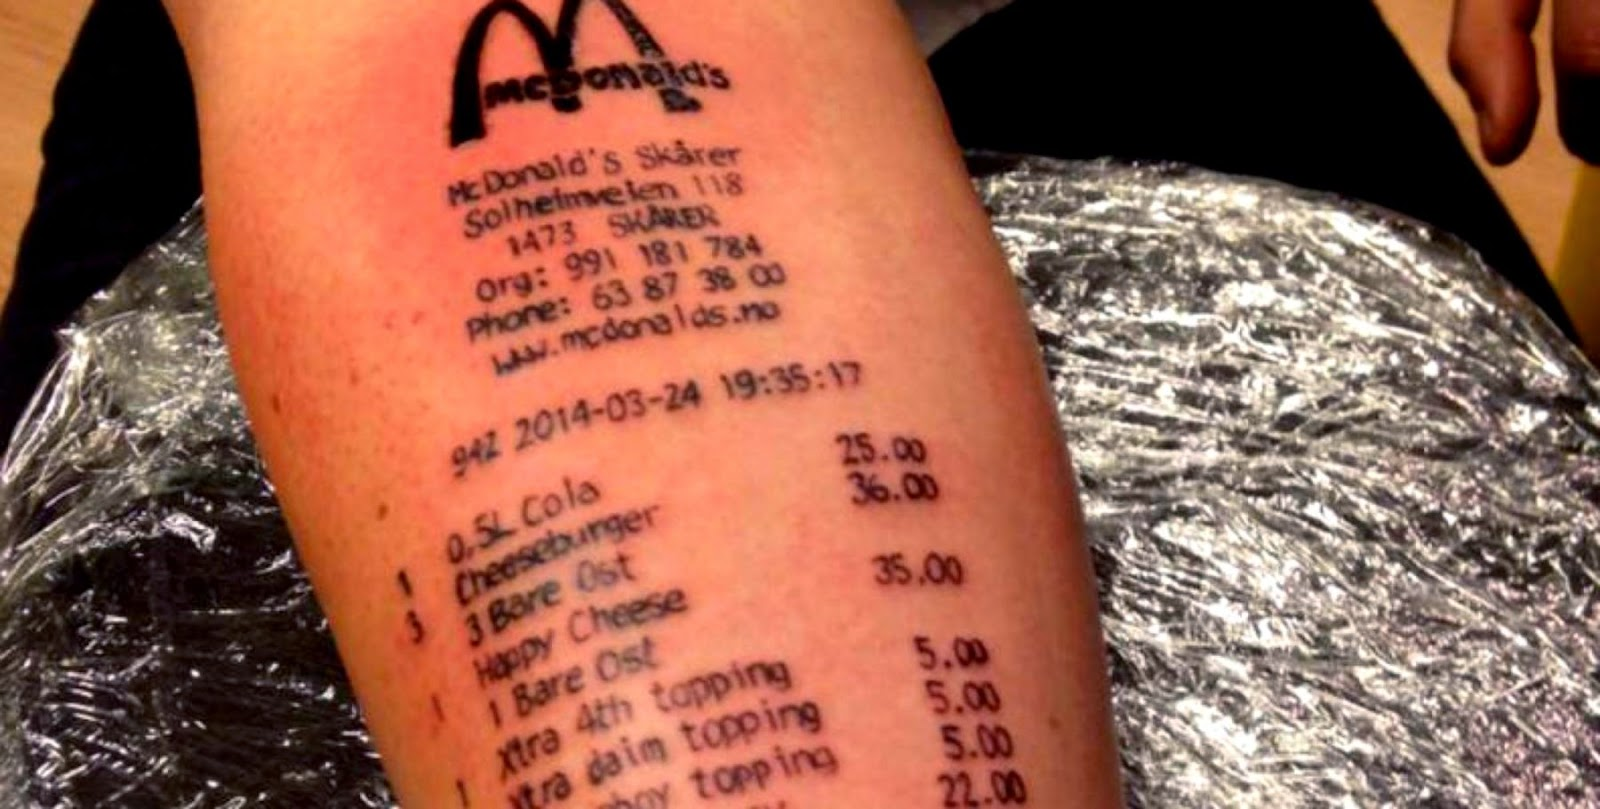 Loyal Customer39 Gets McDonald39s Receipt Tattooed On Arm